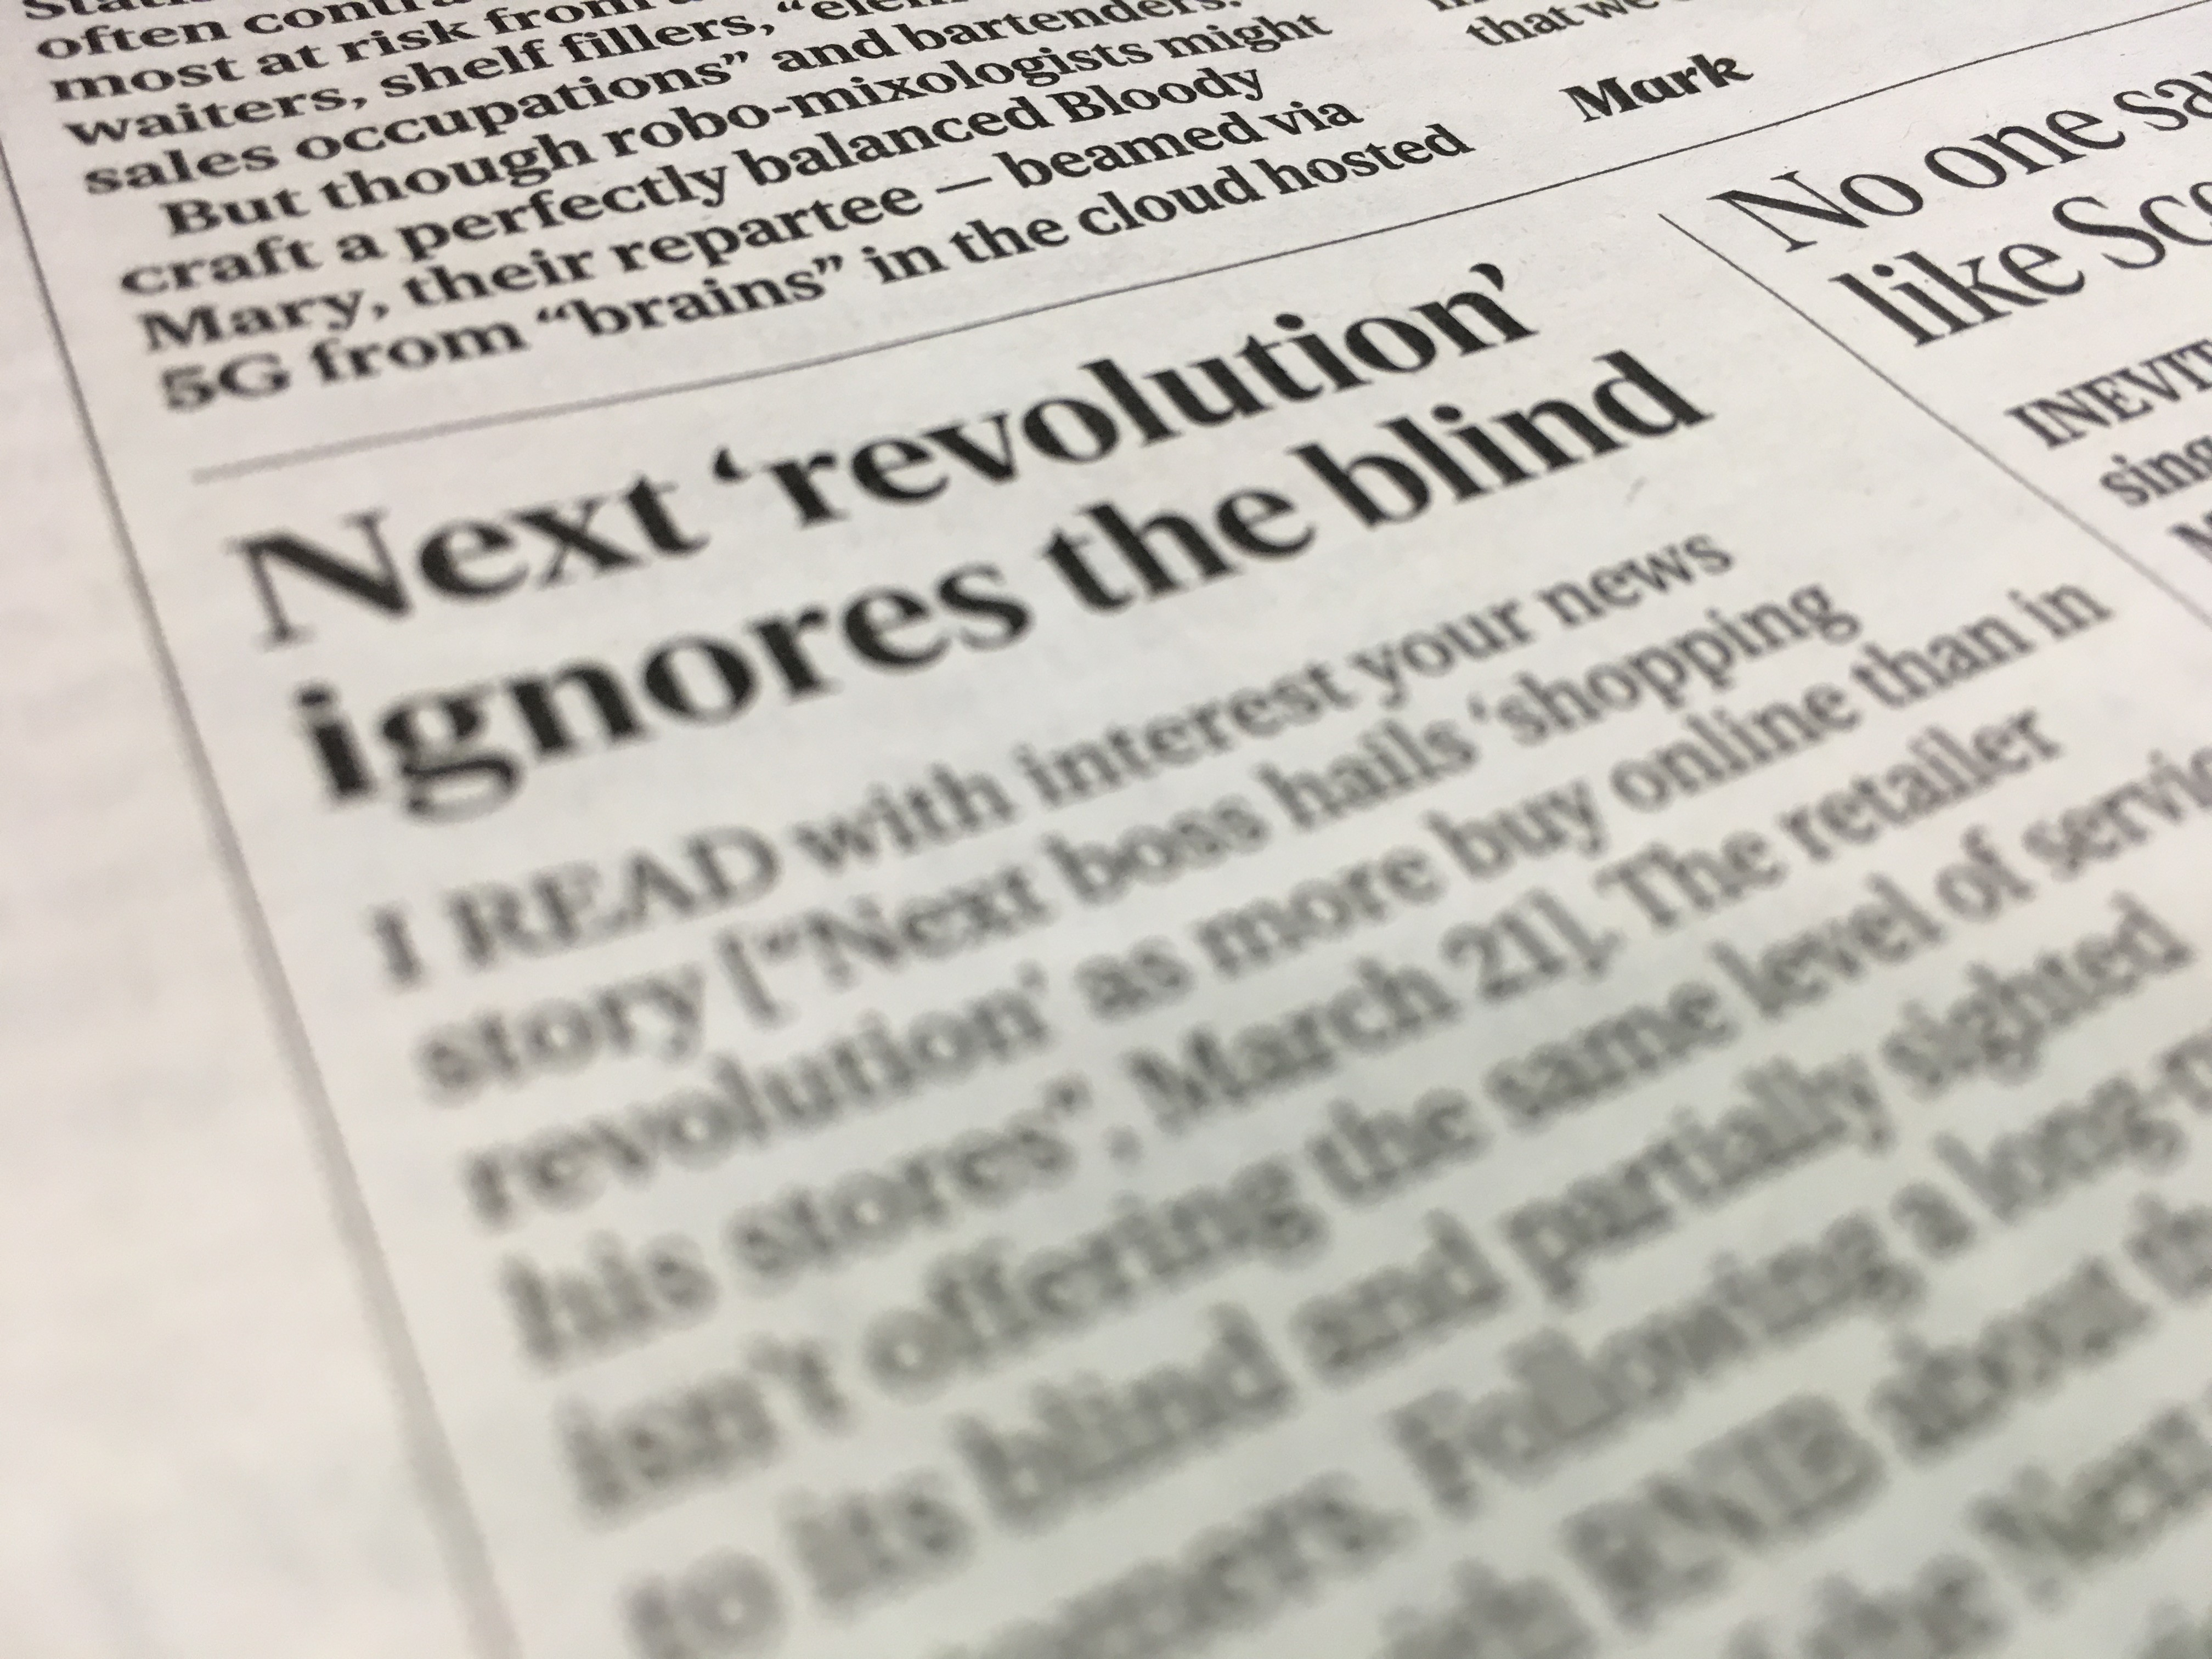 Picture shows the actual Letter to Editor and the heading 'Next revolution ignores the blind'